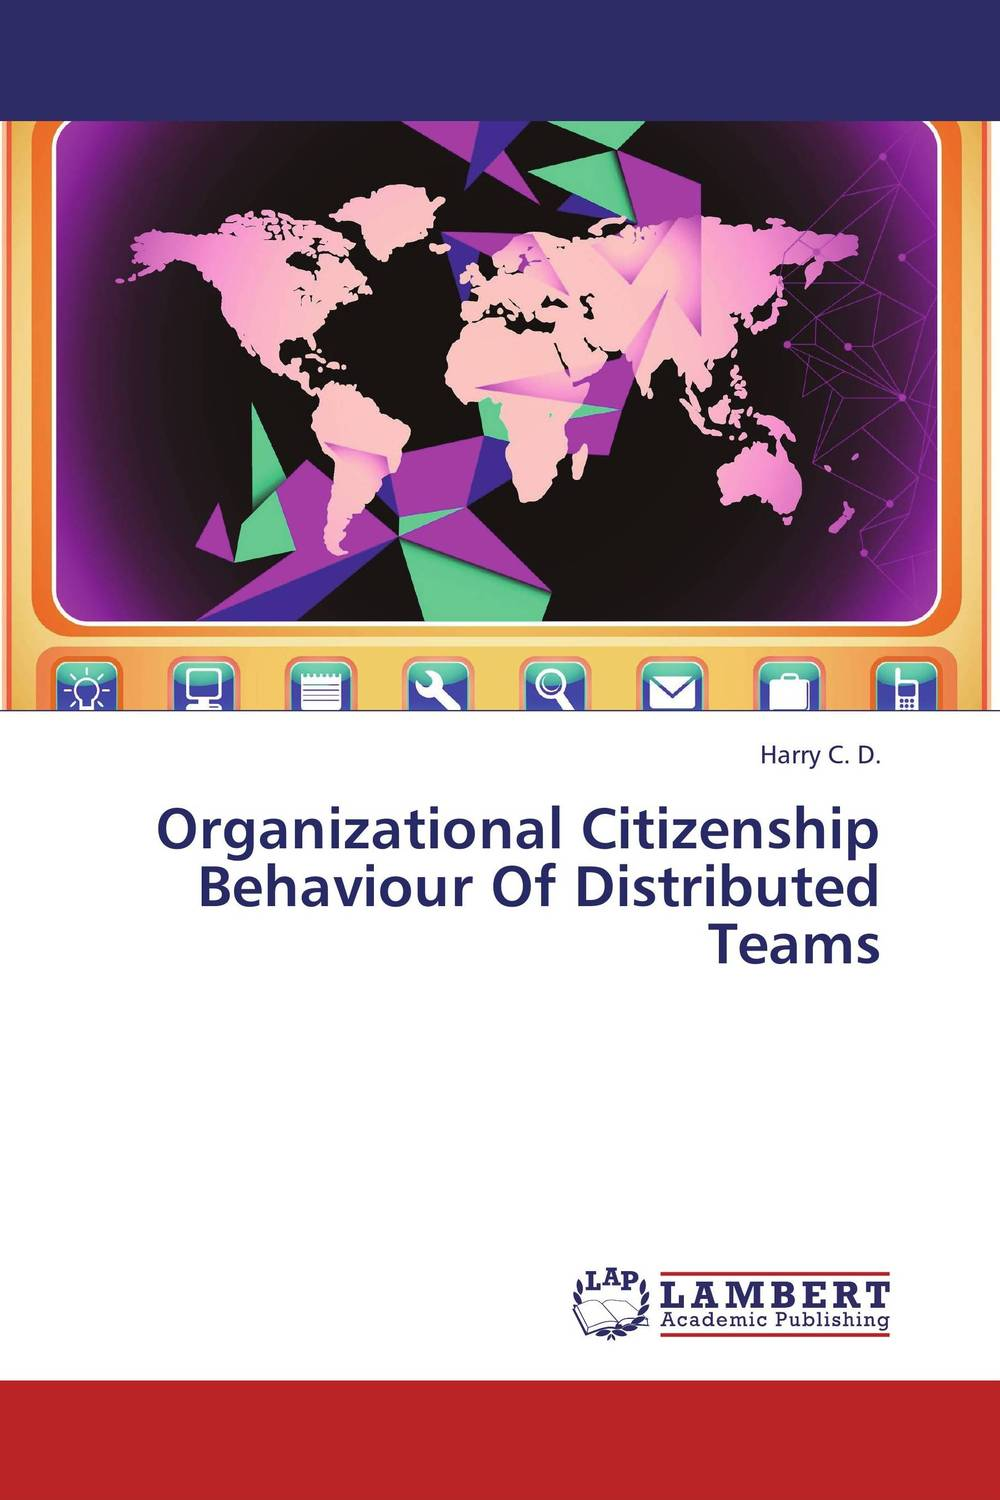 Organizational Citizenship Behaviour Of Distributed Teams